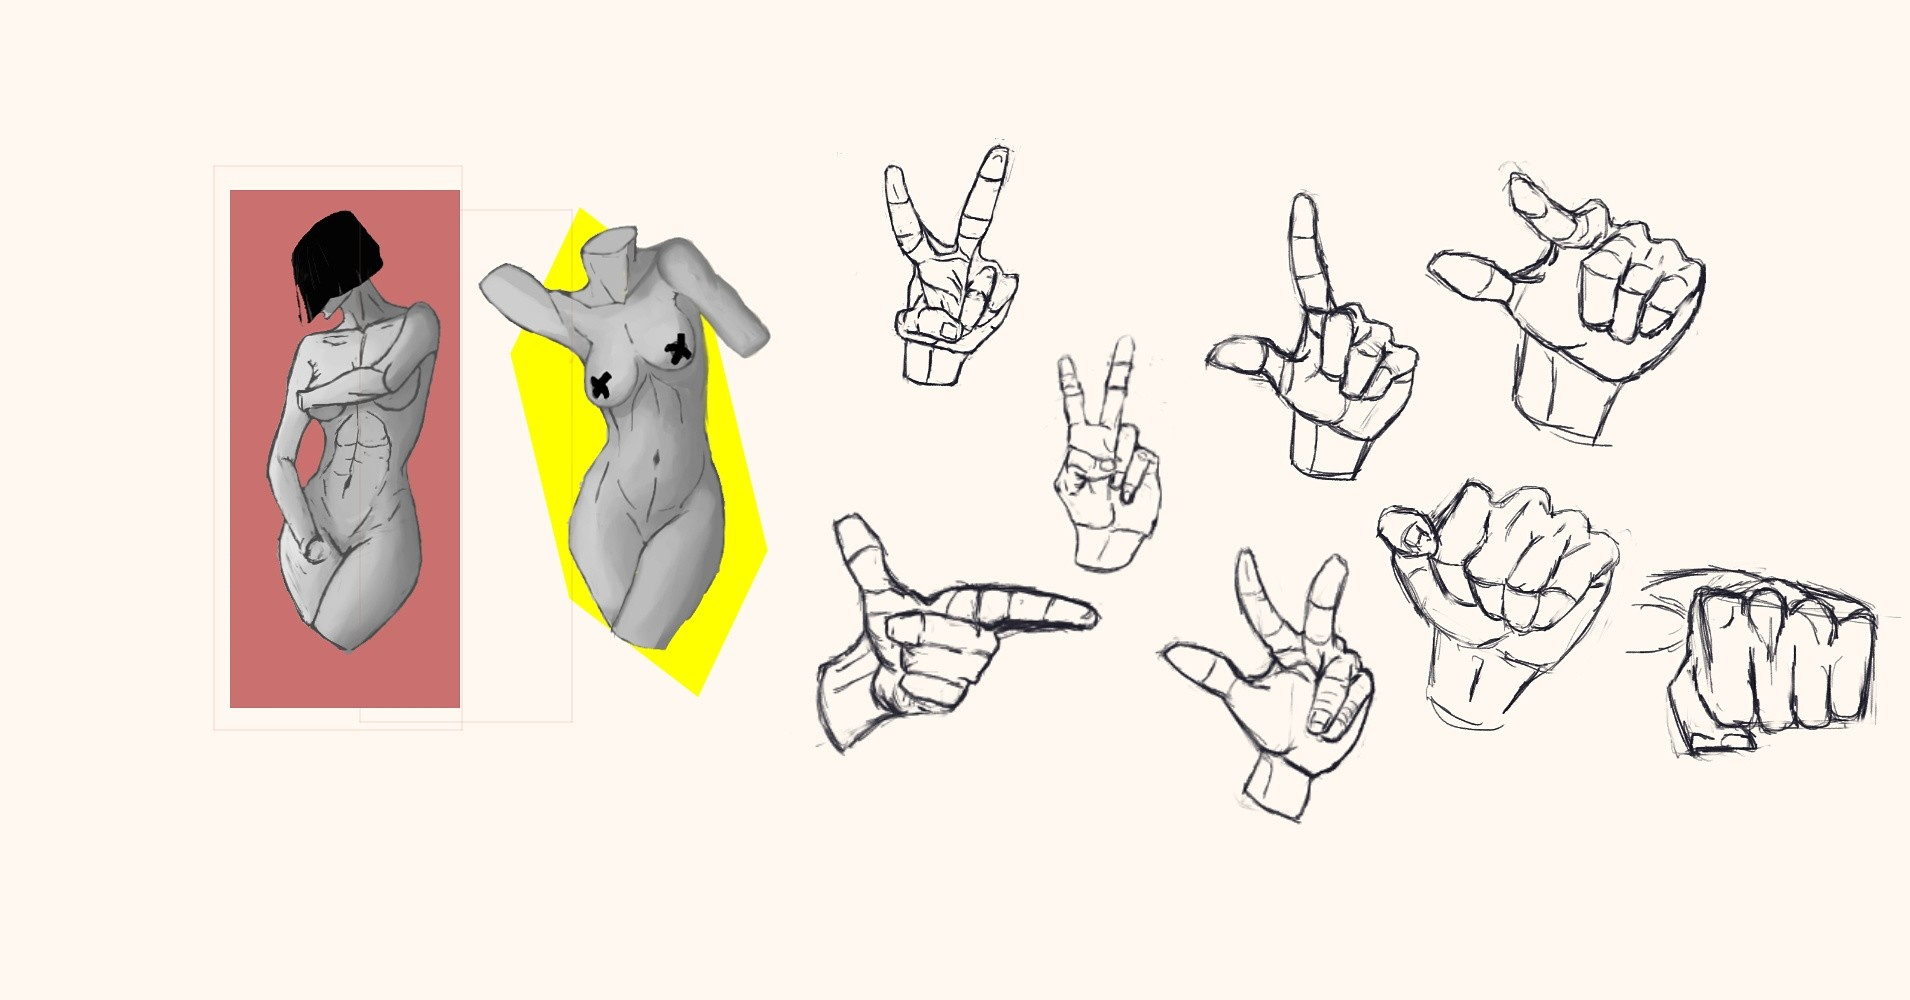 tefodraws Official - Study Anatomy Hands